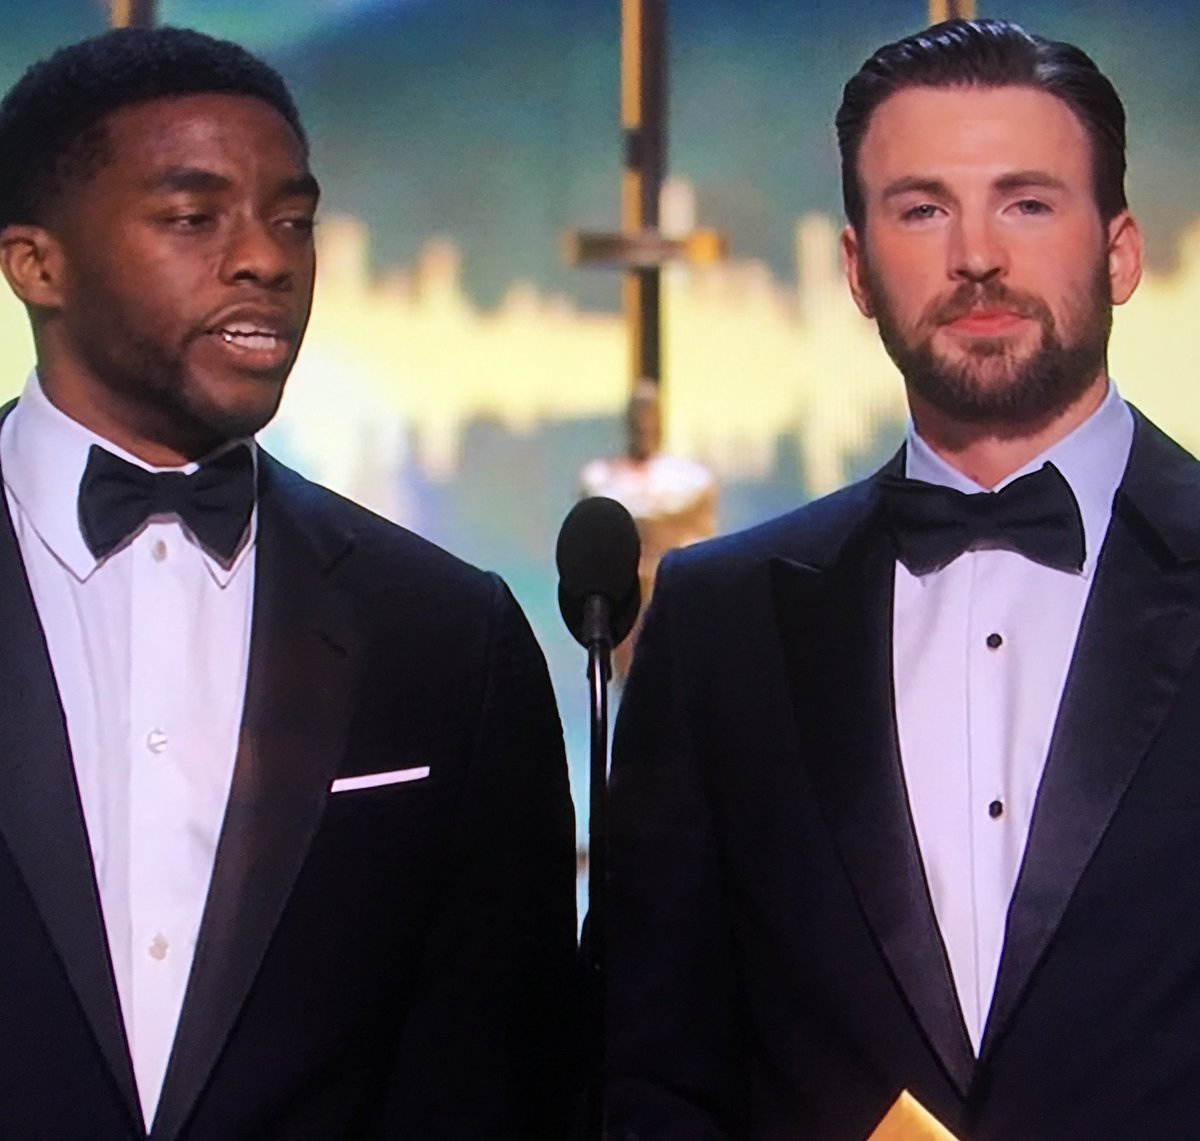 Captain America and Black Panther y'all. https://t.co/LY7OhPxzi0